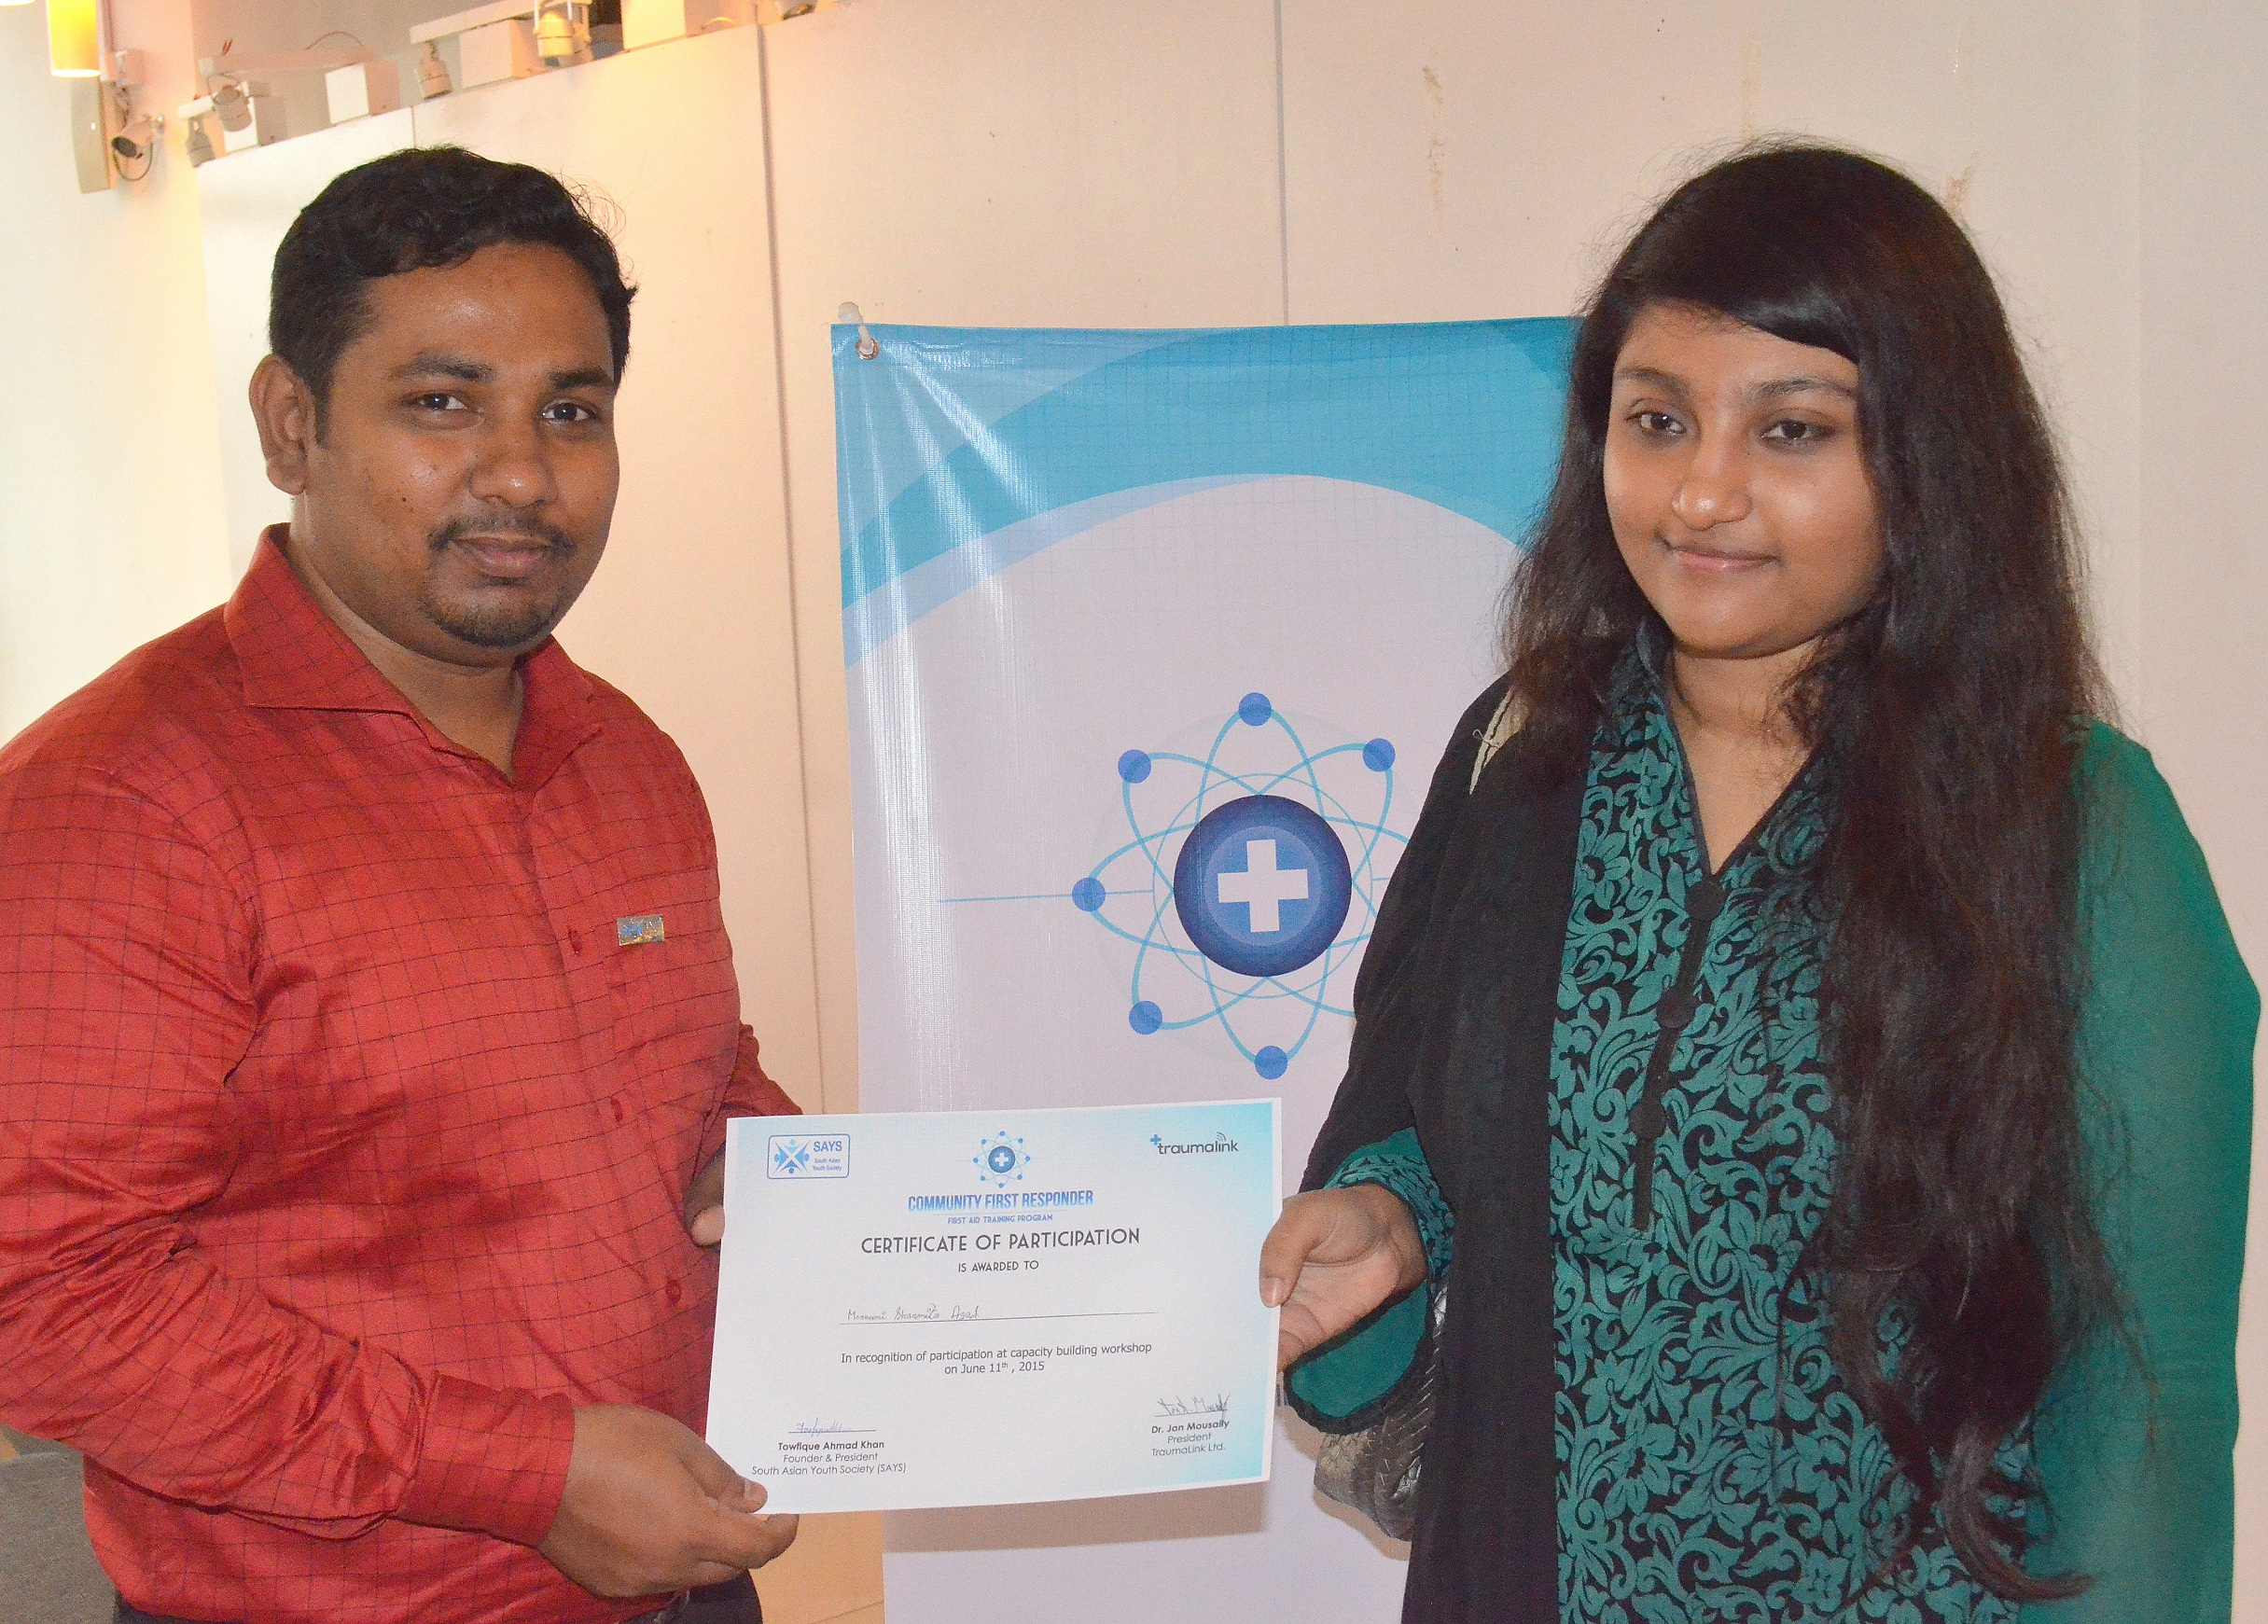 Young man holding and passing certificate to young lady